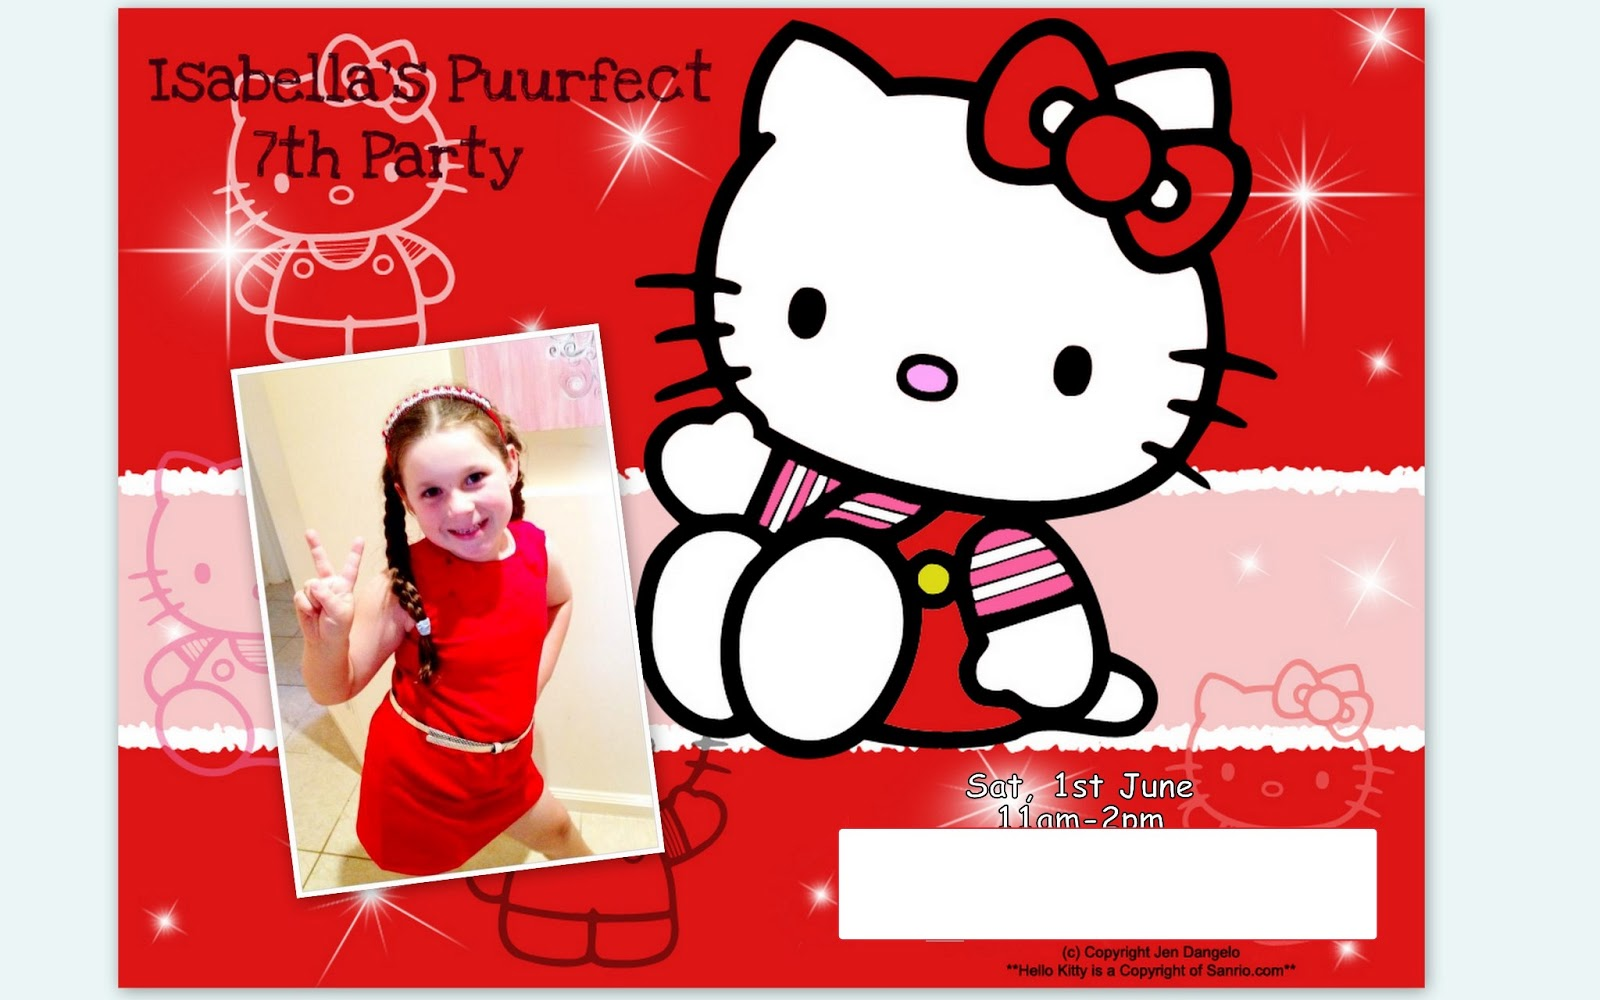 One mummys musings isabellas hello kitty 7th birthday party the party invitation stopboris Image collections